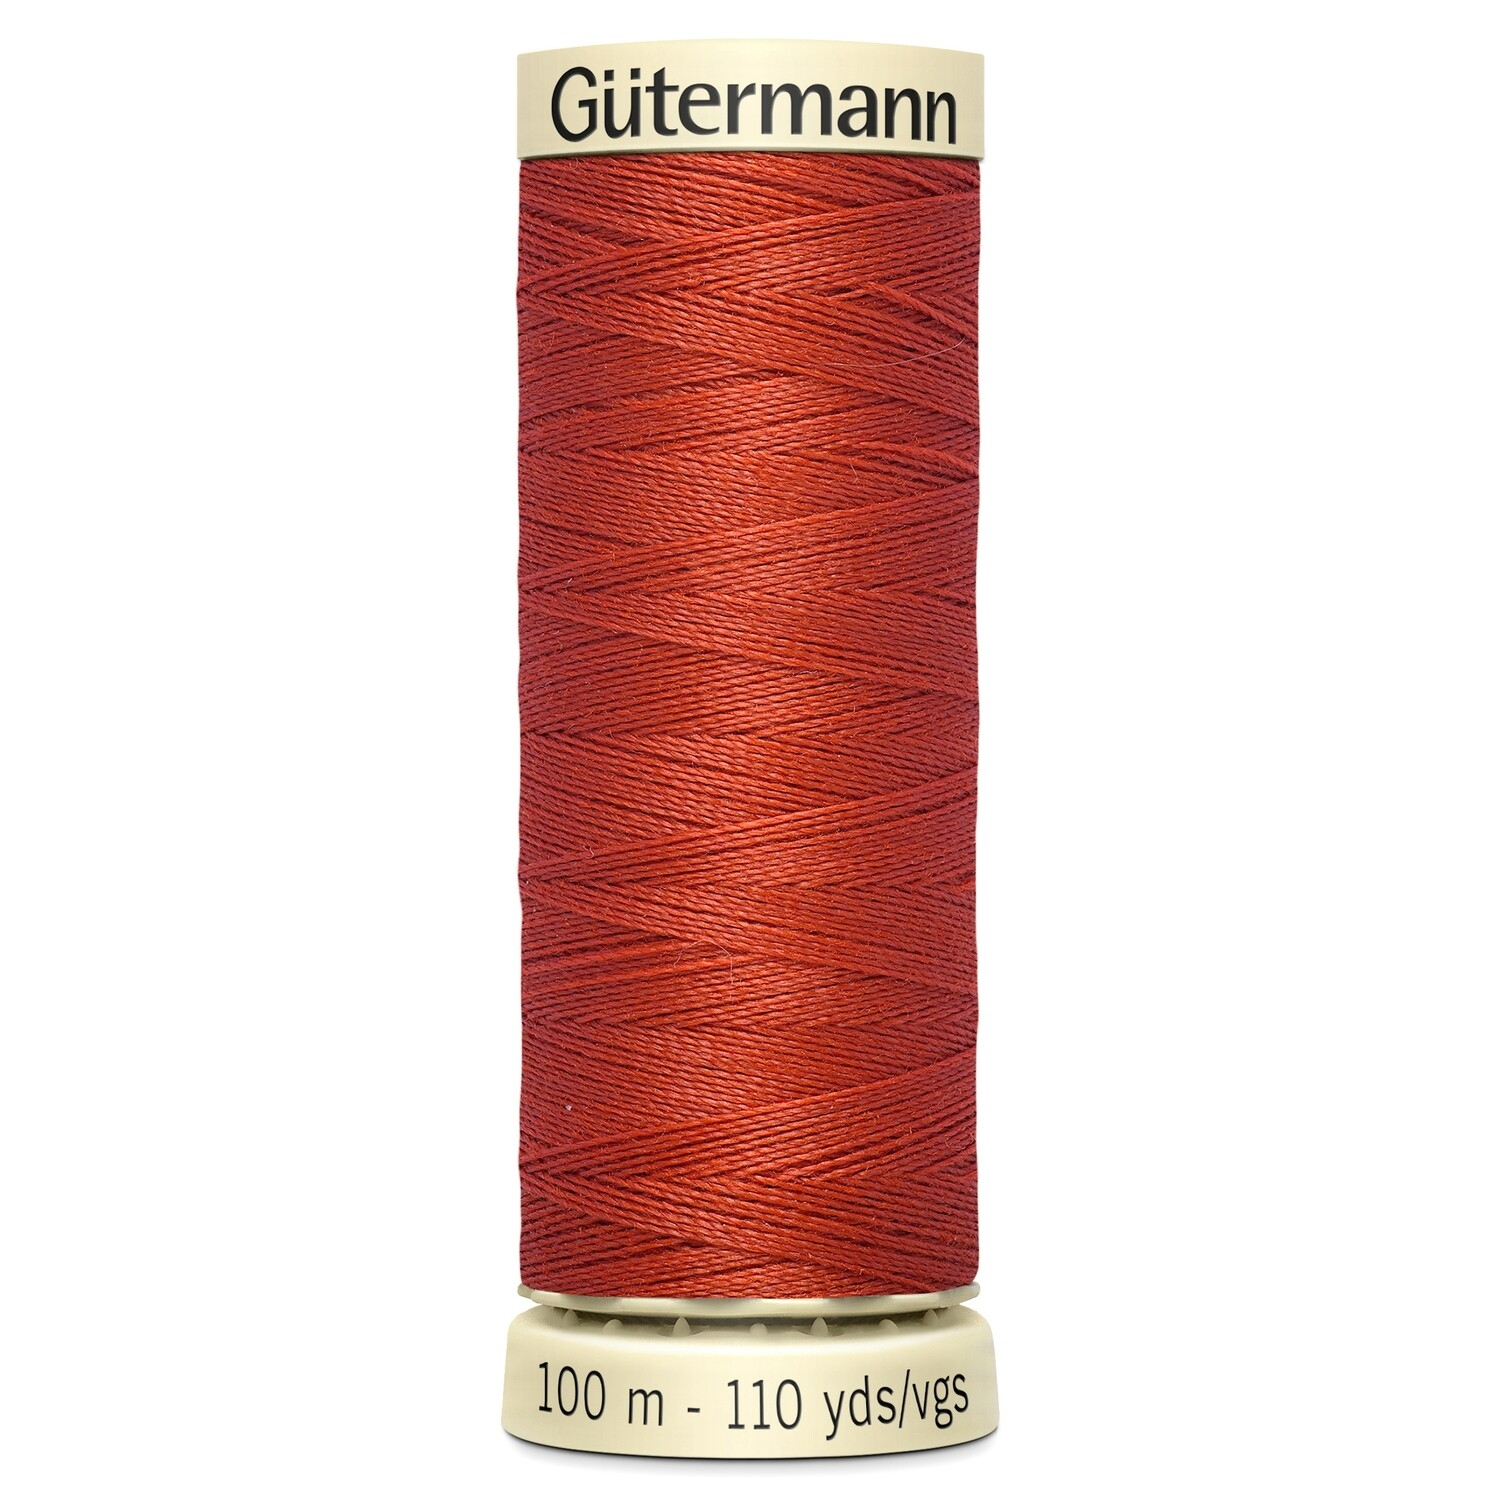 Gutermann Sew-All thread 589